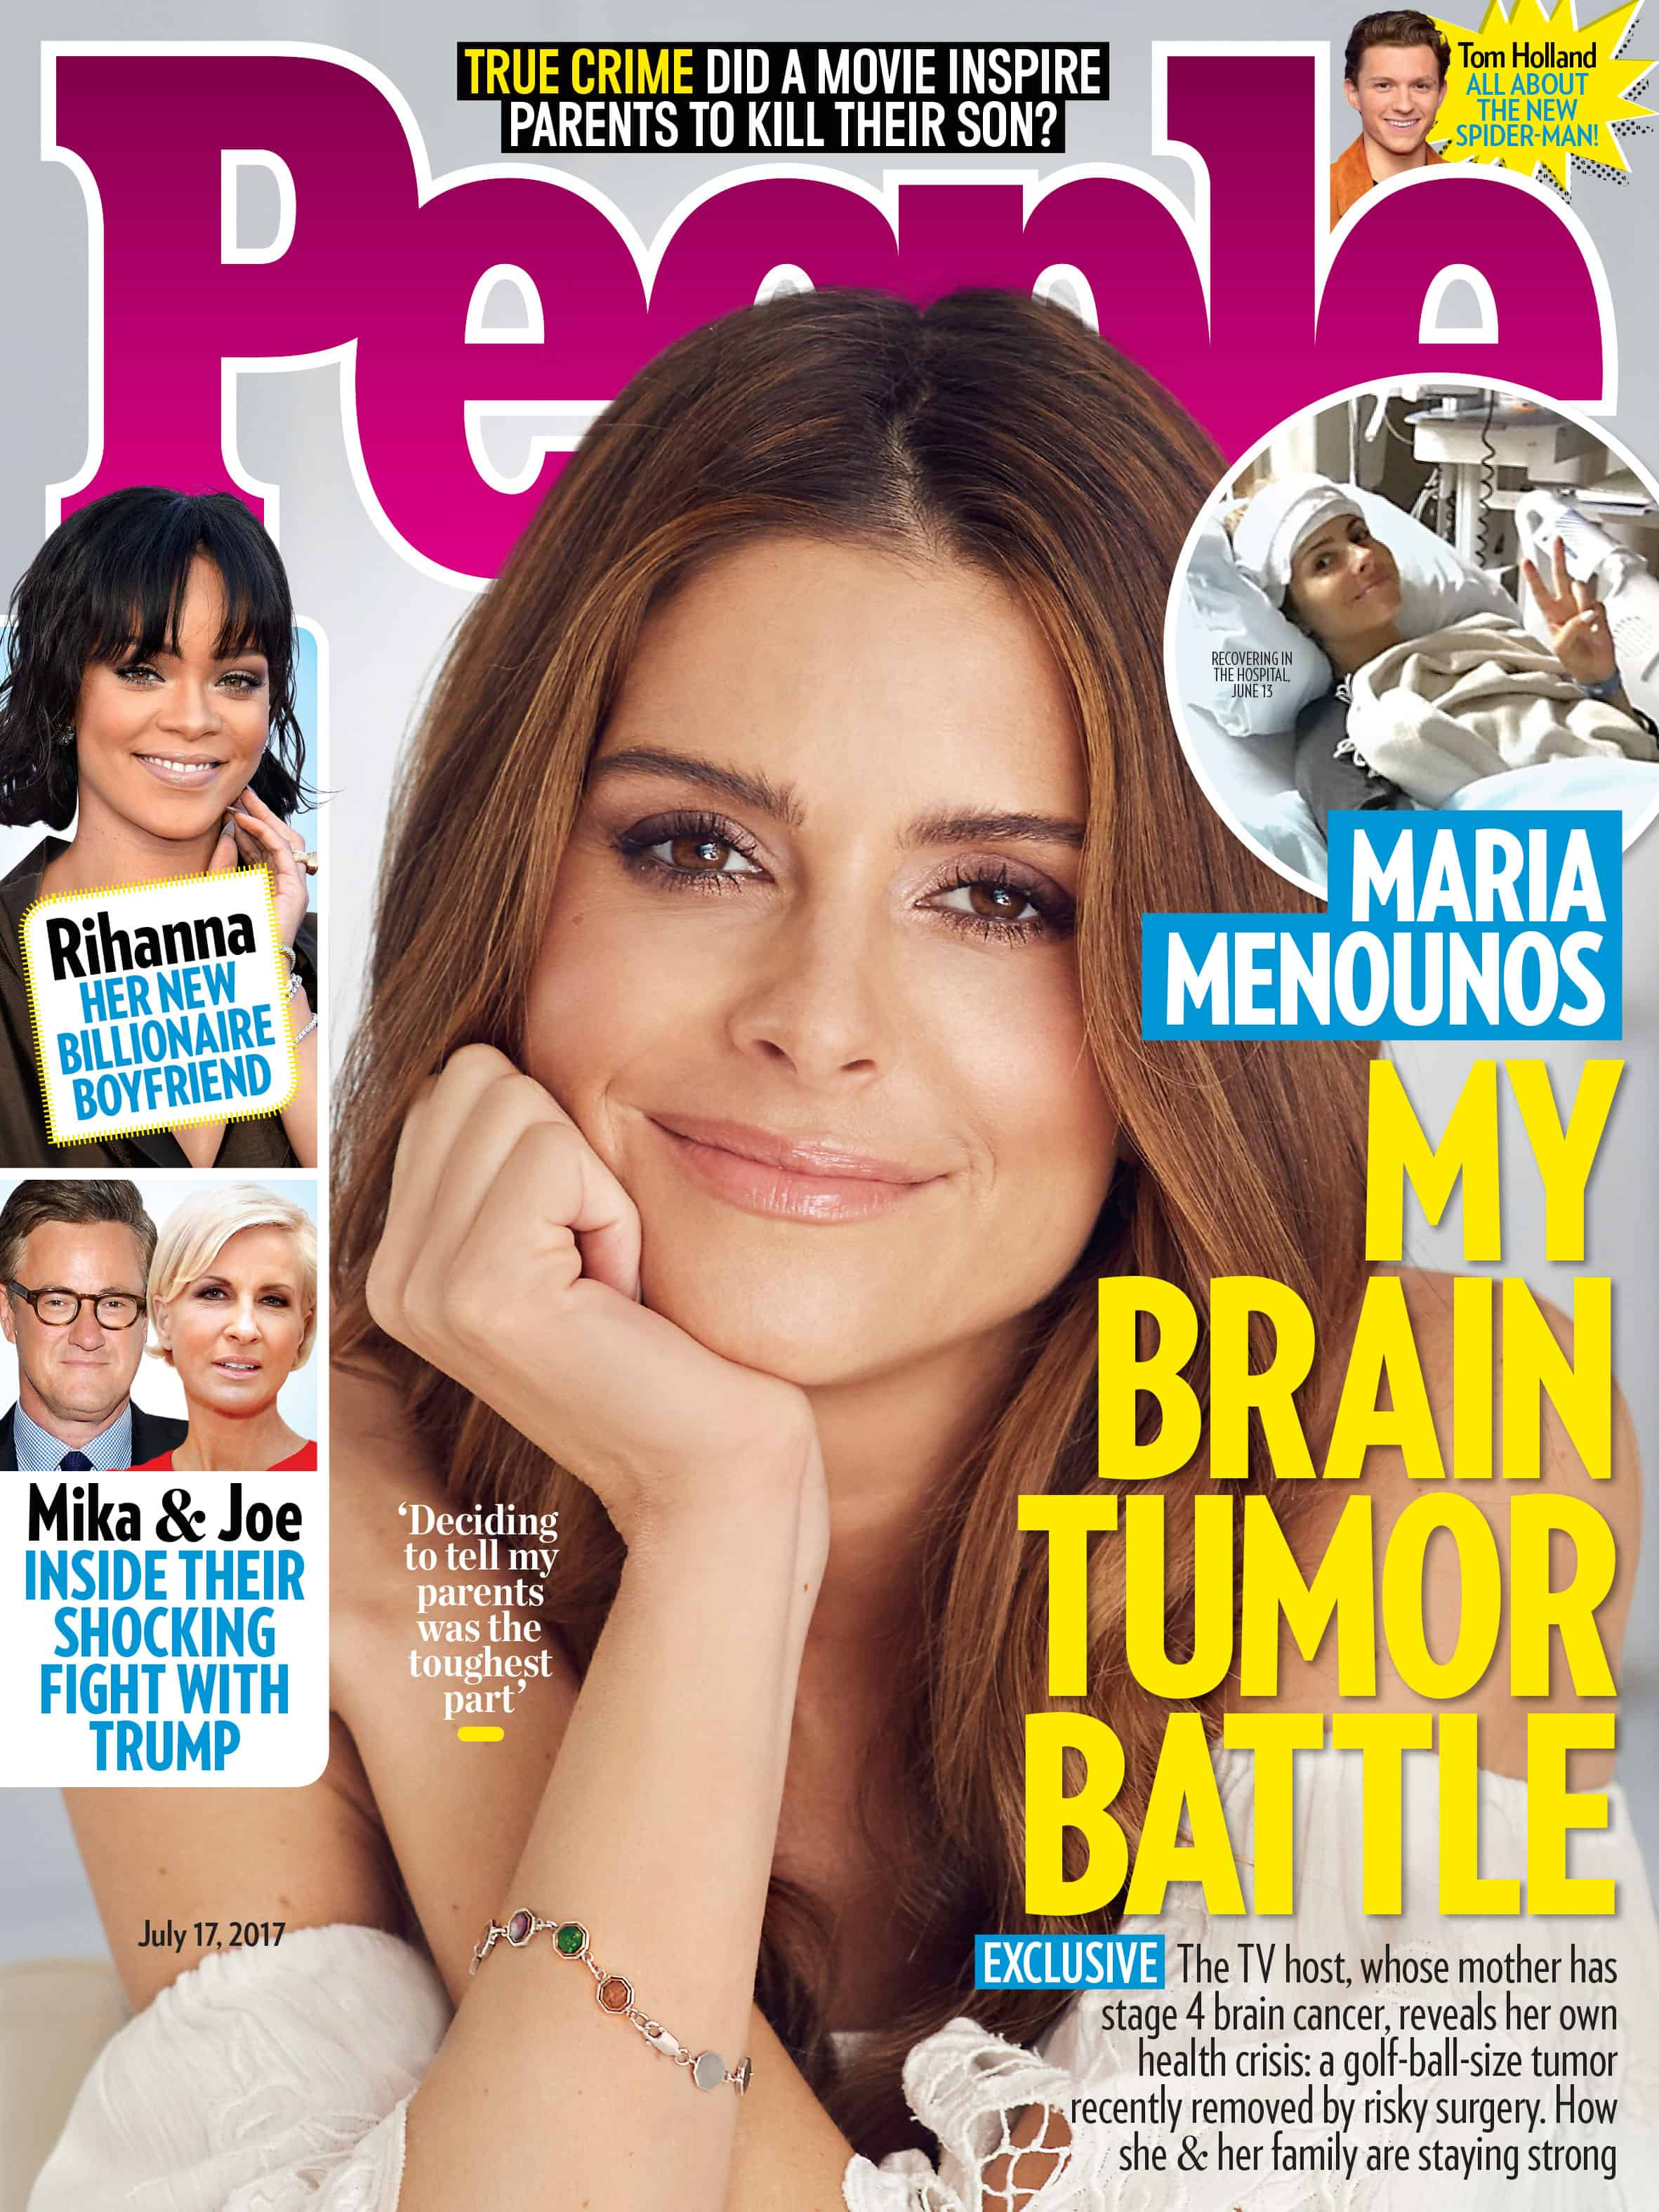 maria magazine brain menounos tumor diagnosed she reveals cancer today july battle stage removed everyone mom says starcasm issue engagement